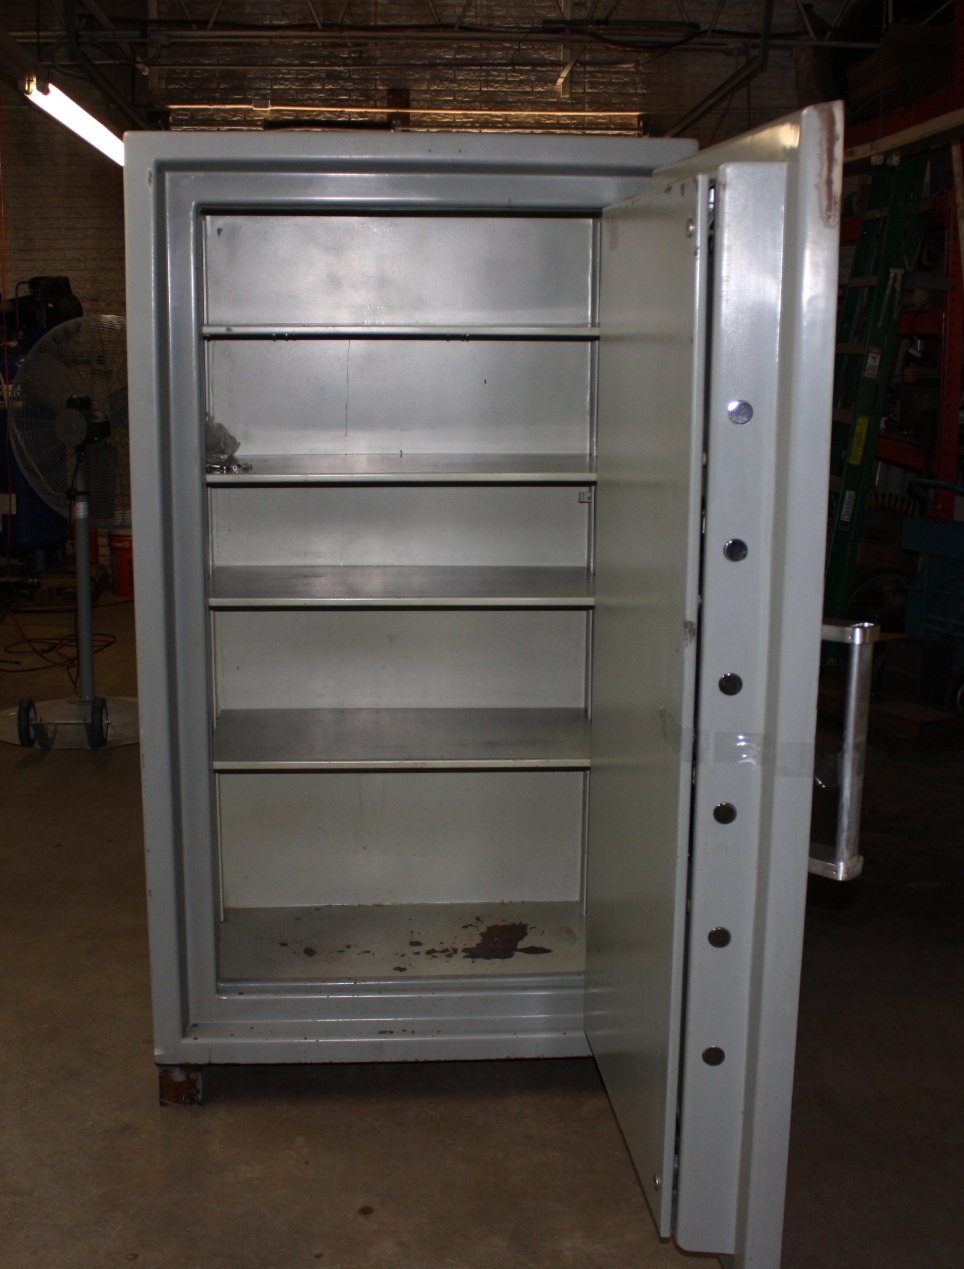 ism cash vault tl30 cv 6333 70 9 hx40 9 wx28 3 d outside 63 hx33 1 wx18 1 d inside 3625 lbs this ism offers six sided protection